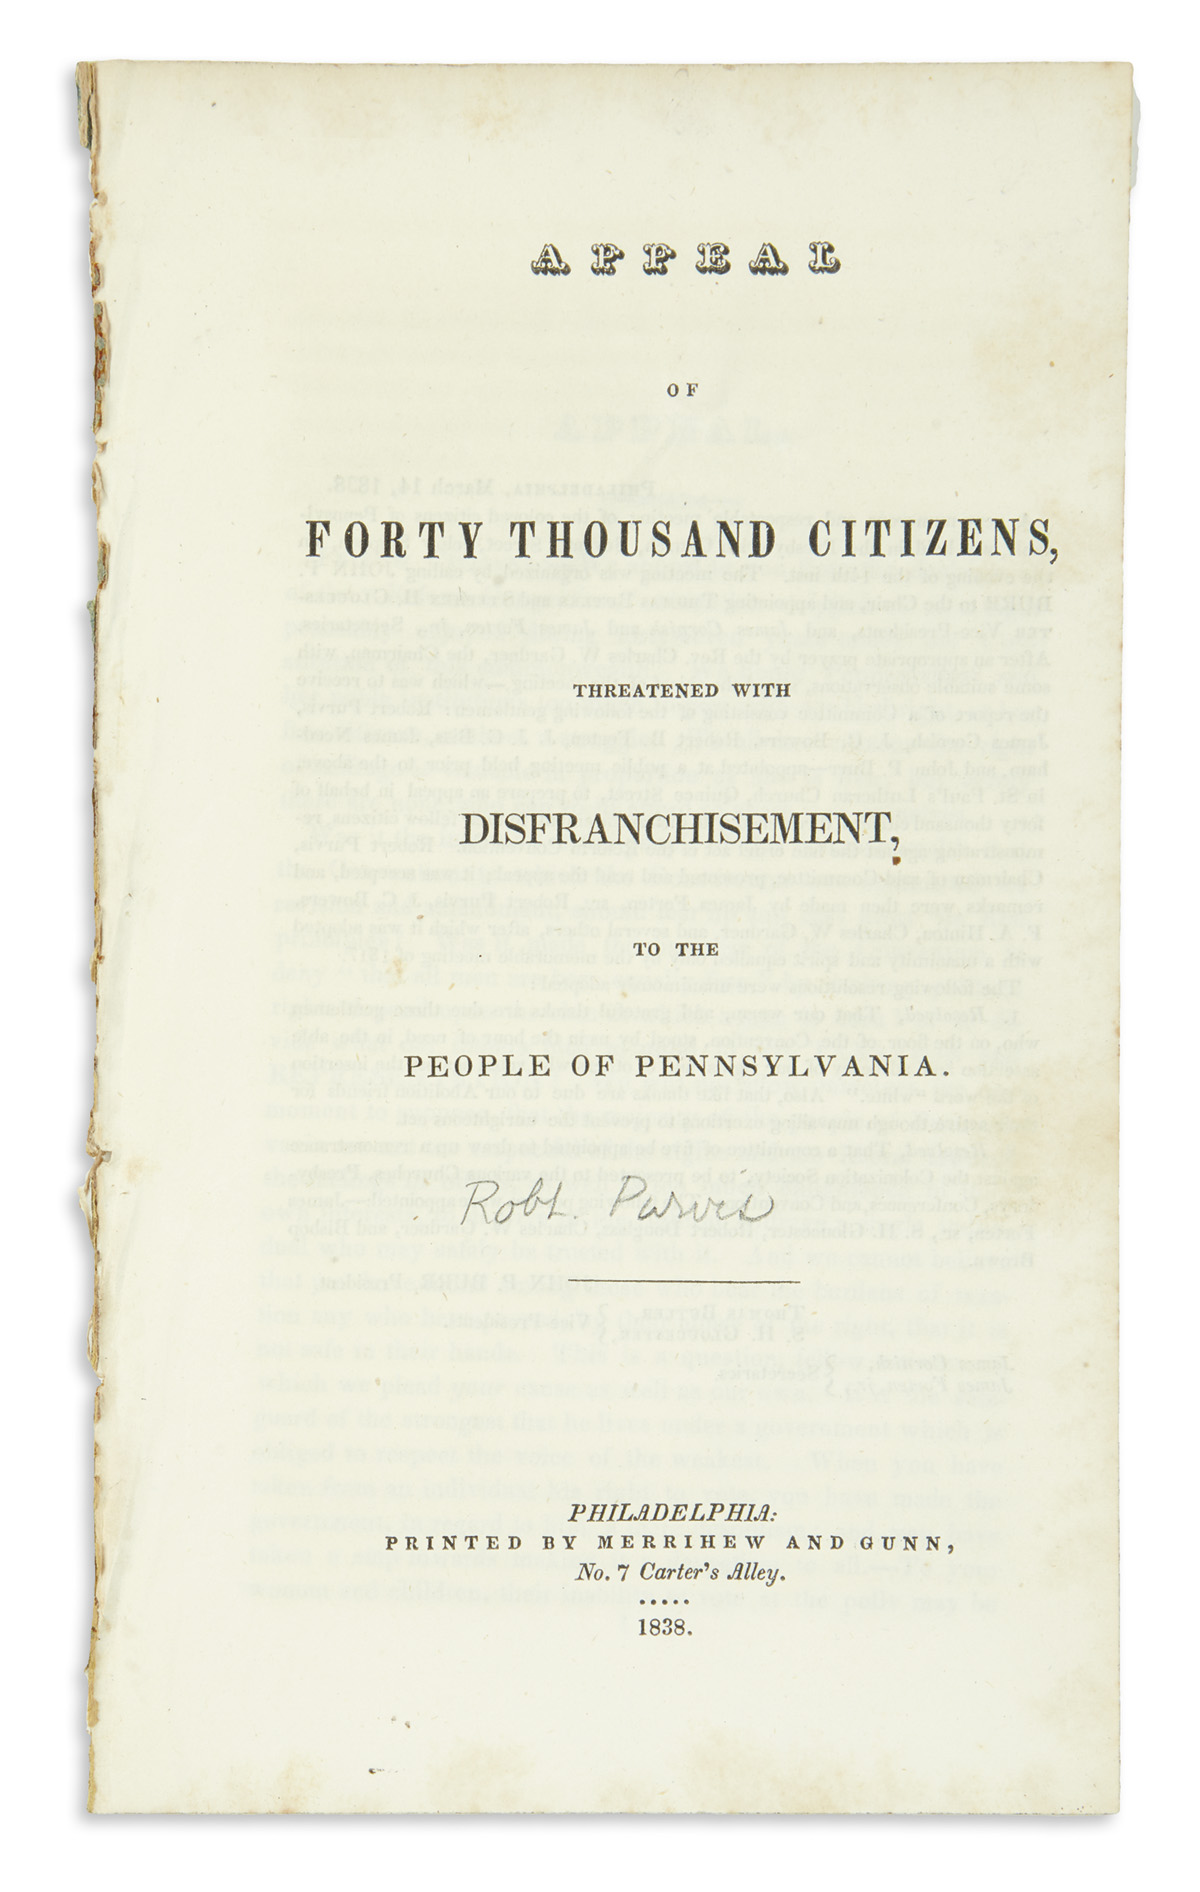 (POLITICS.) [Purvis, Robert.] Appeal of Forty Thousand Citizens Threatened with Disenfranchisement,